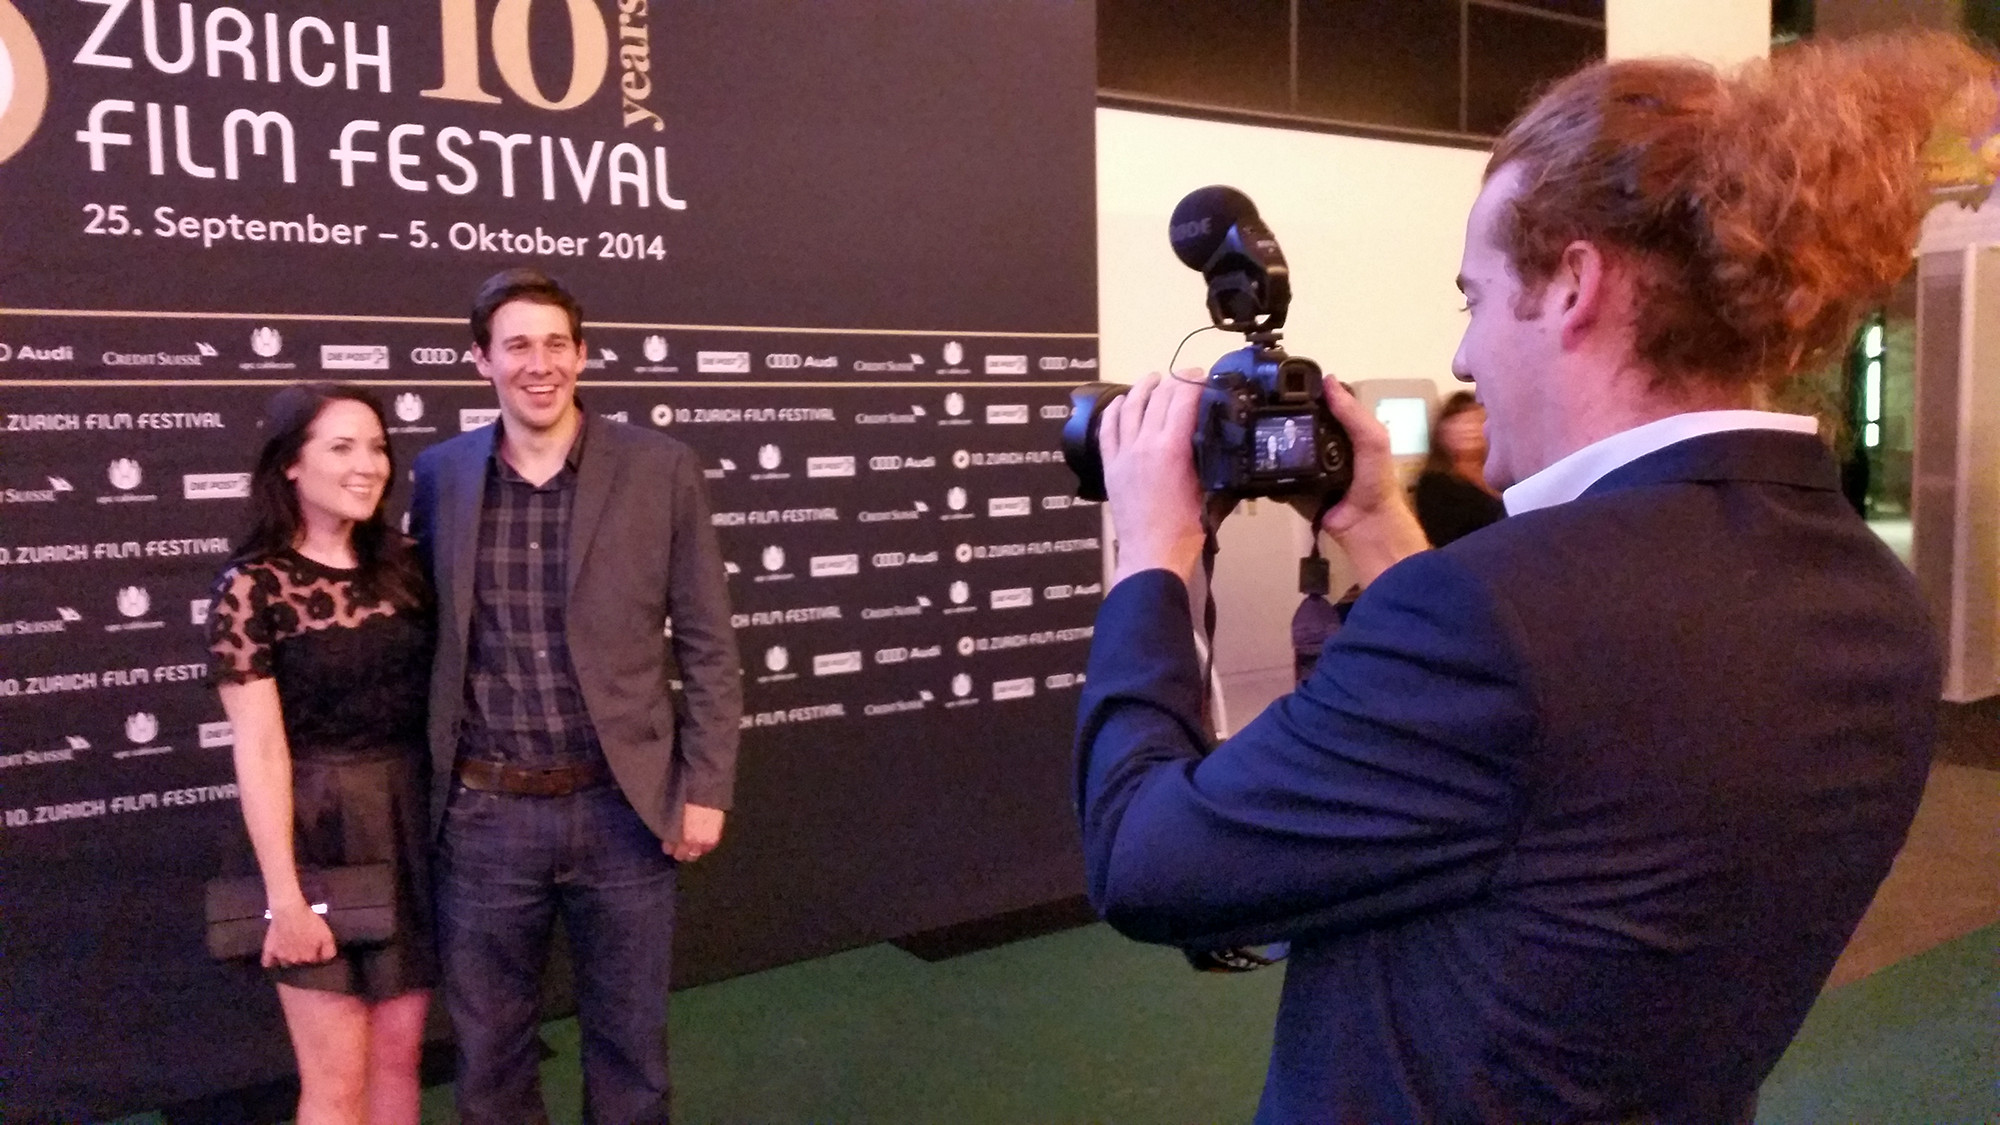 The Rise and Rise of Bitcoin am Zurich Film Festival